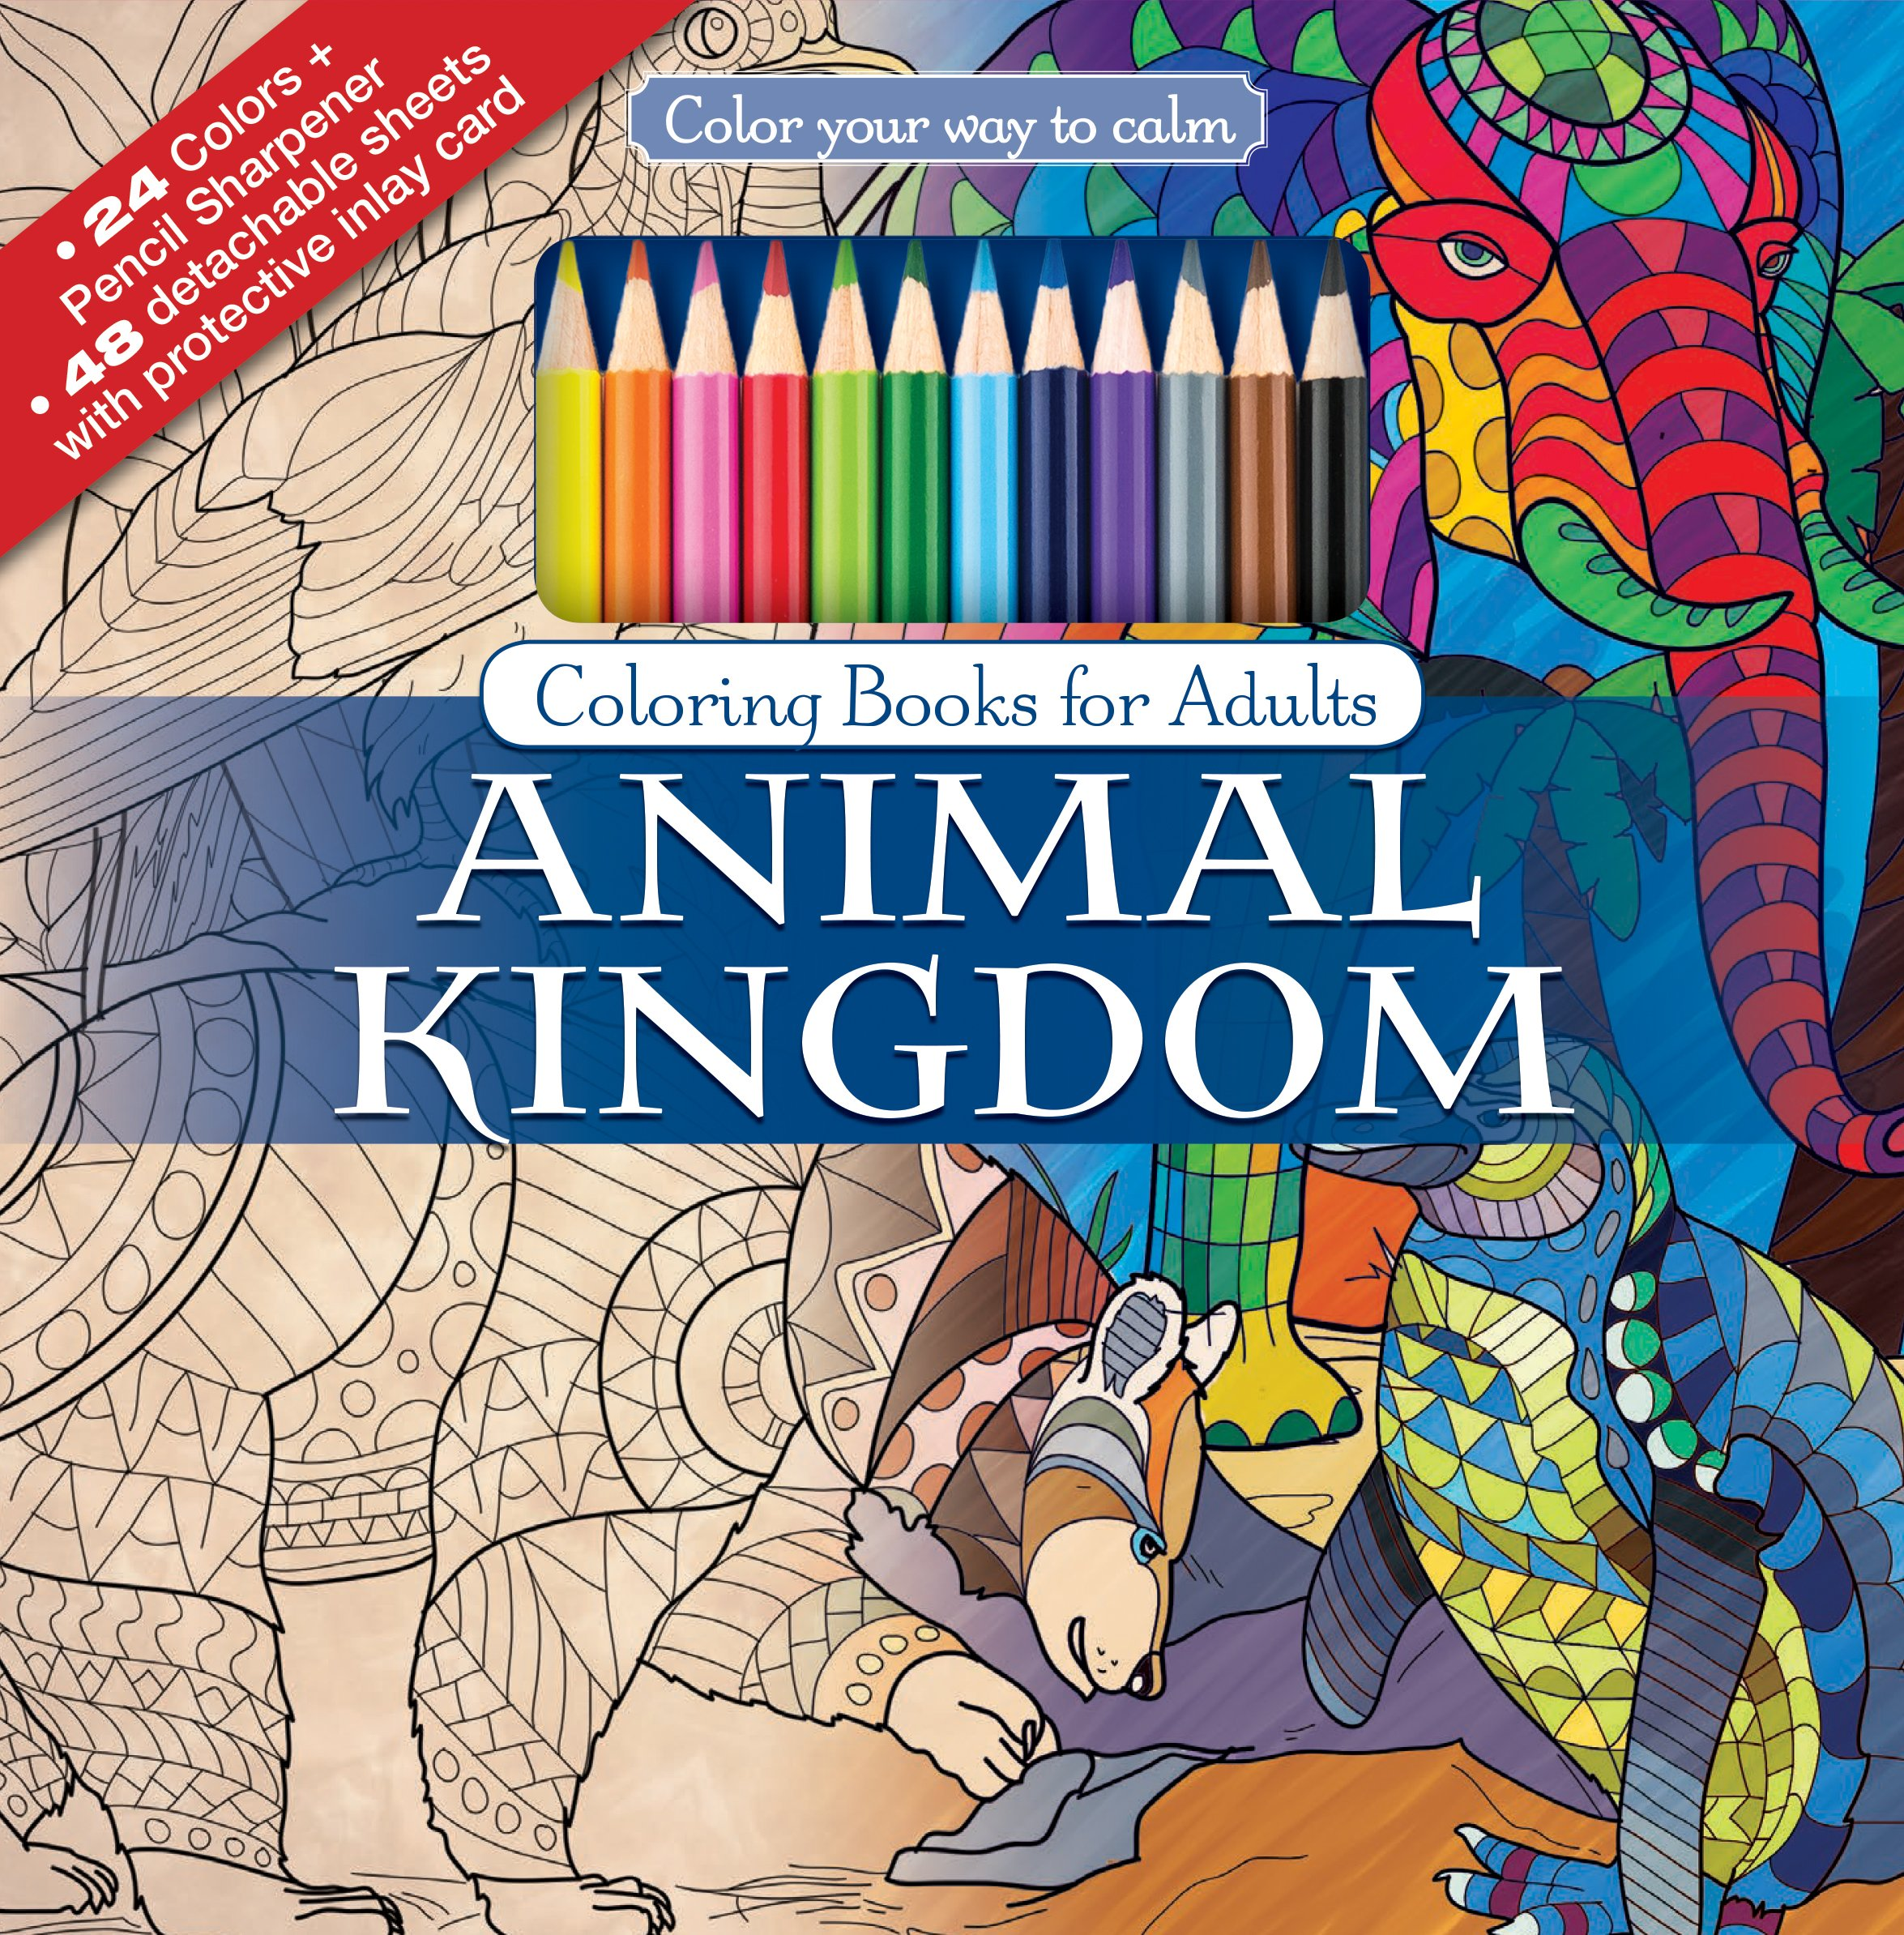 Amazon Animal Kingdom Adult Coloring Book Set With 24 Colored Pencils And Pencil Sharpener Included Color Your Way To Calm 9781988137209 Newbourne